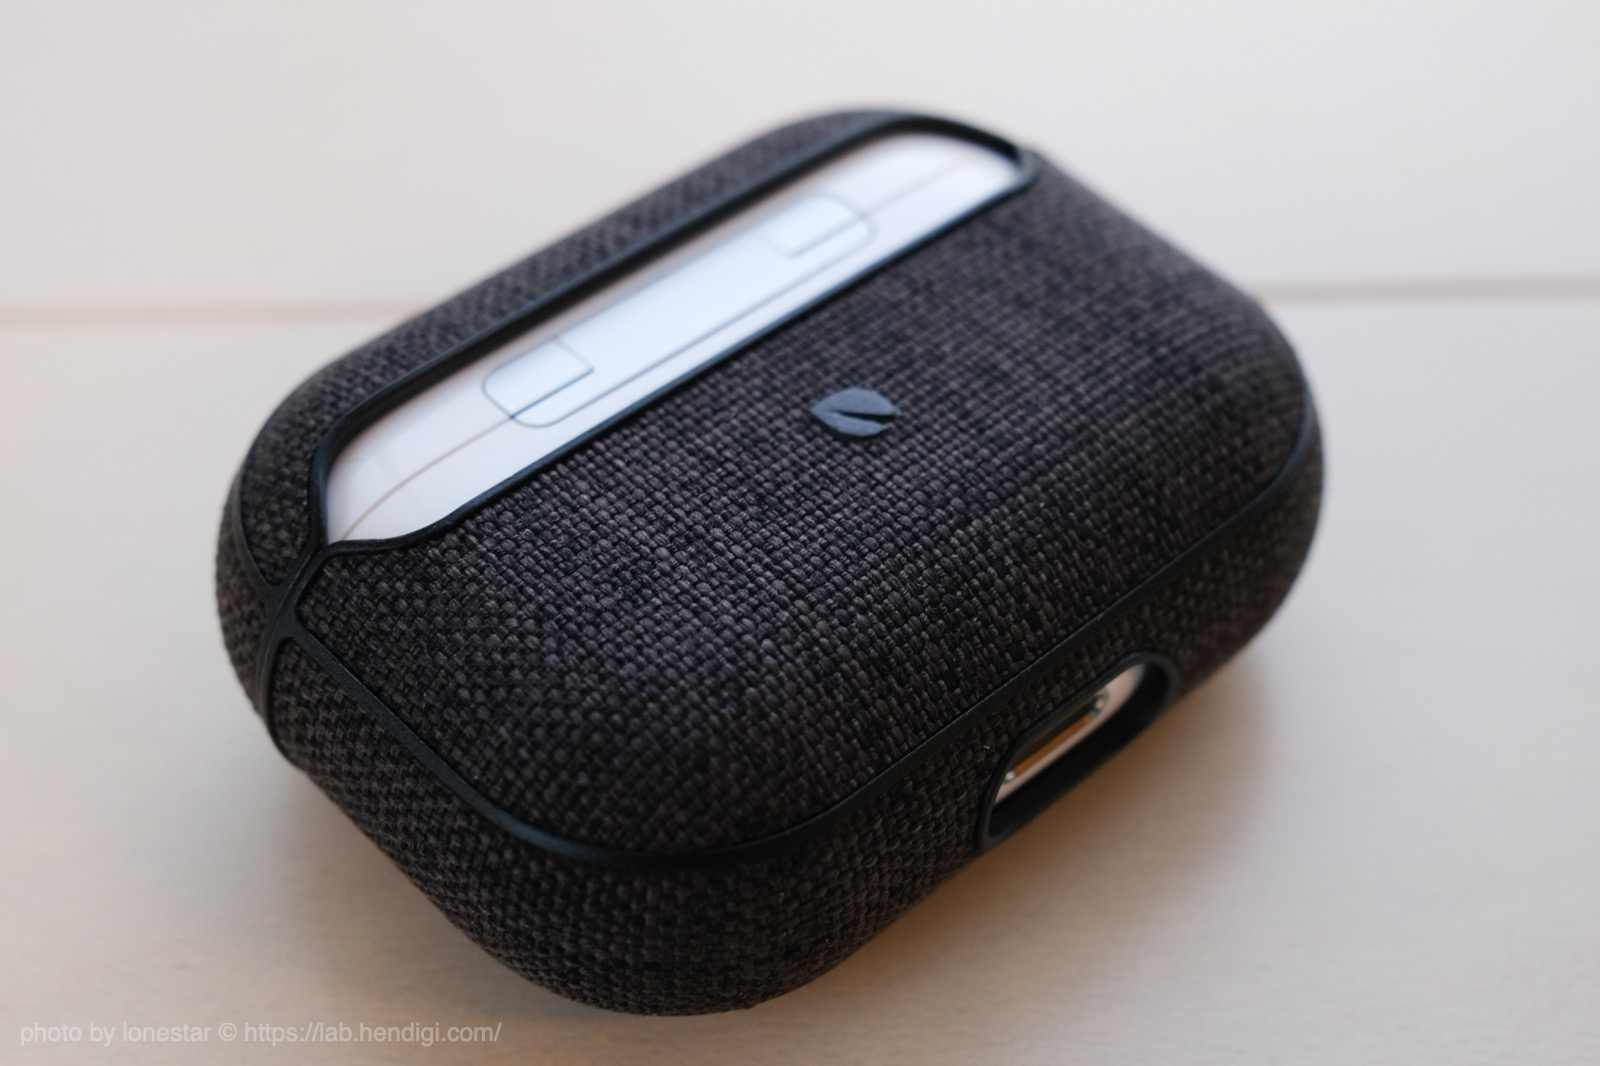 Incase AirPods Pro Case with Woolenex レビュー